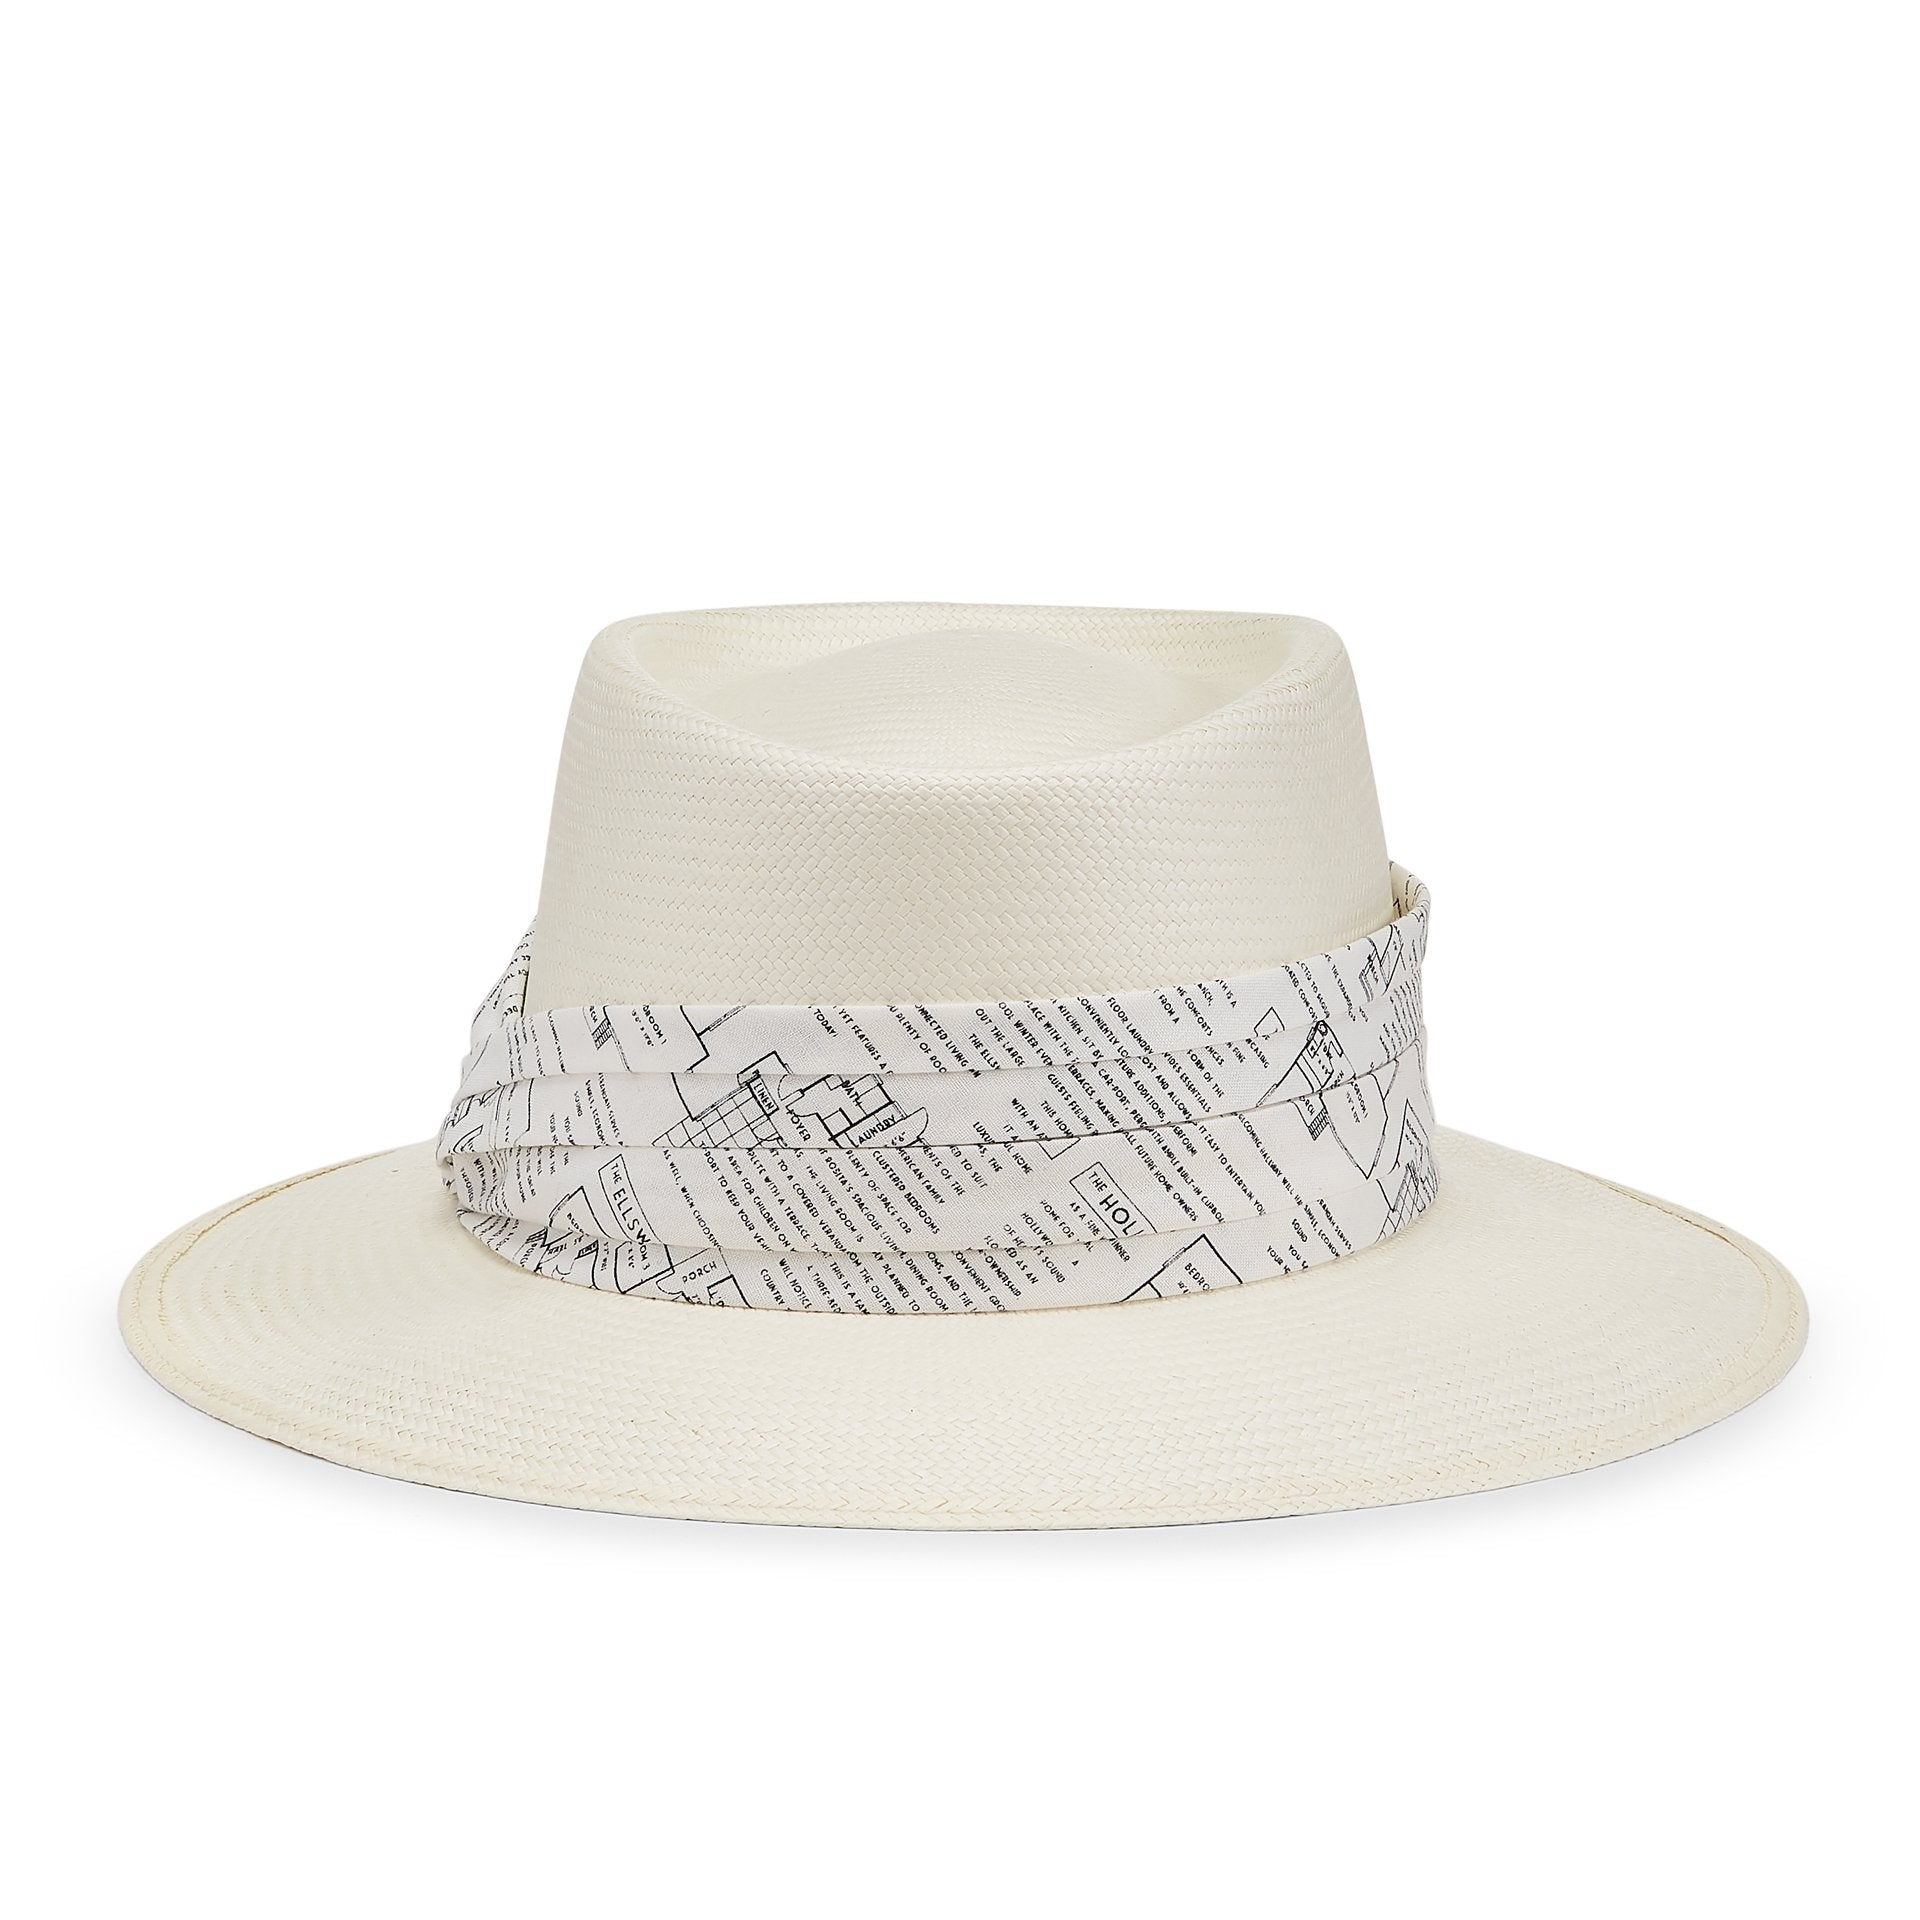 Editor's choice Panama hat - Panamas, Straw and Sun Hats for Women - Lock & Co. Hatters London UK